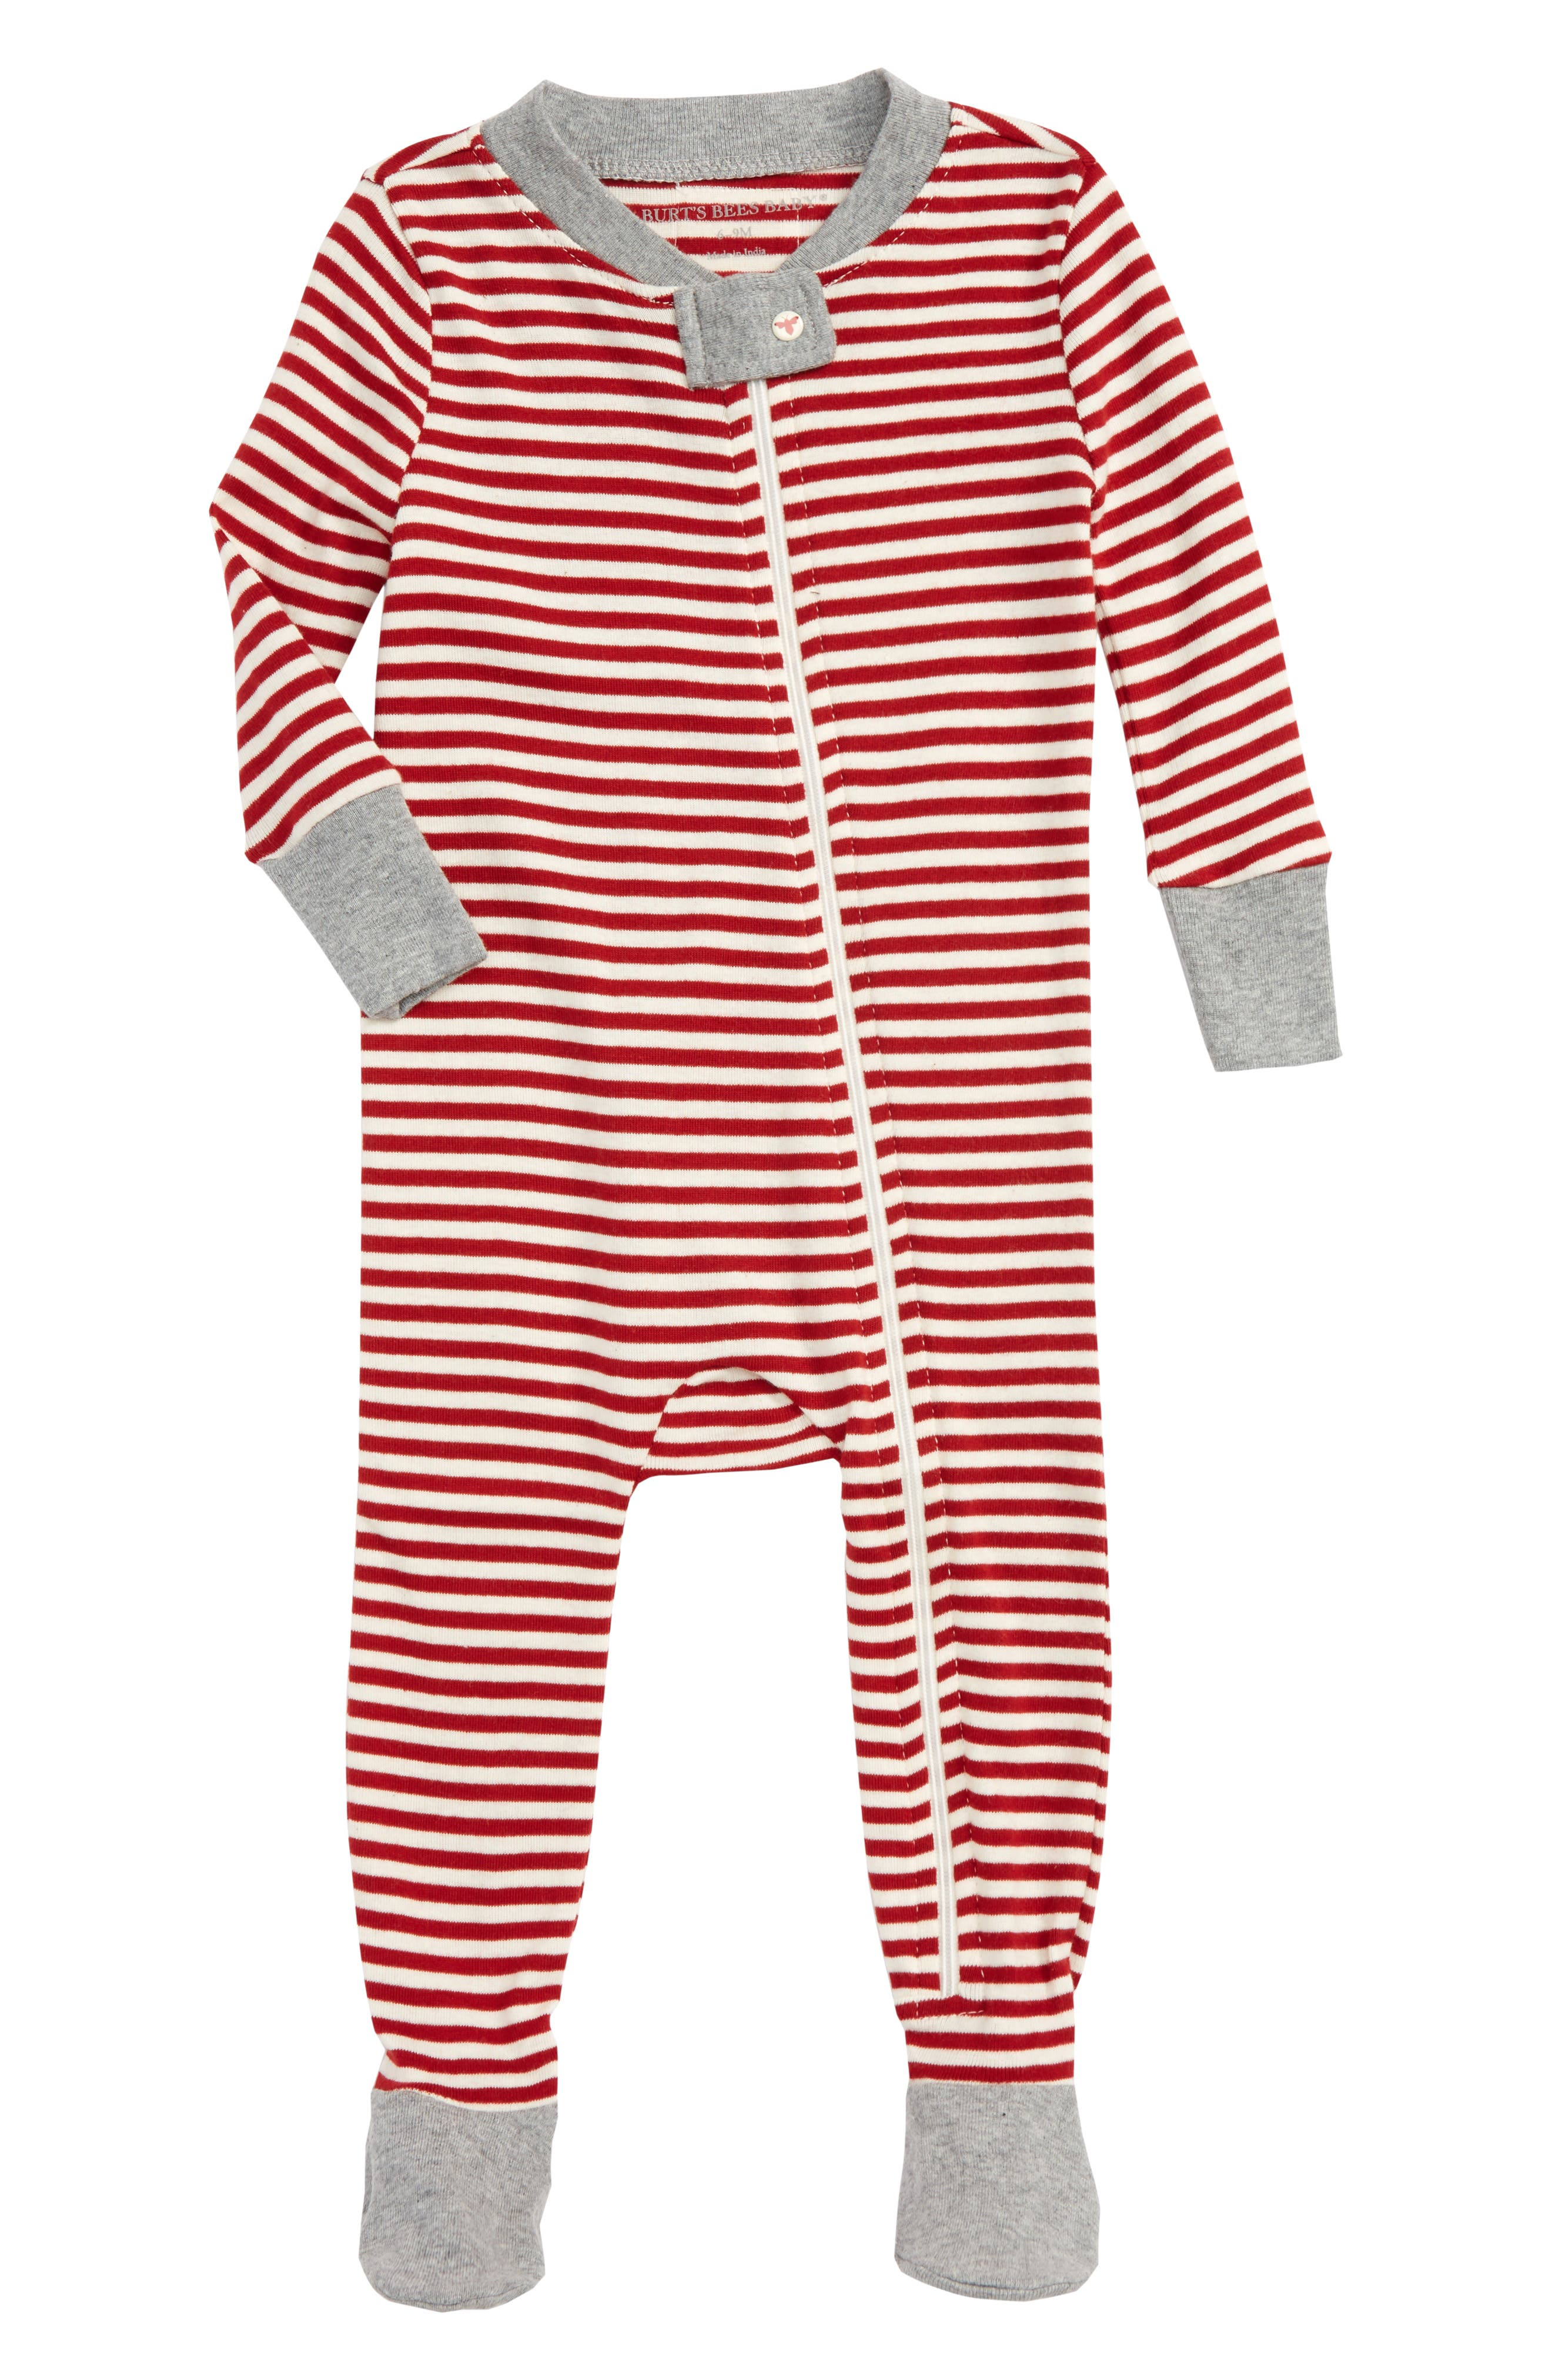 Main Image - Burt's Bees Baby Fitted One-Piece Footie Pajamas (Baby)